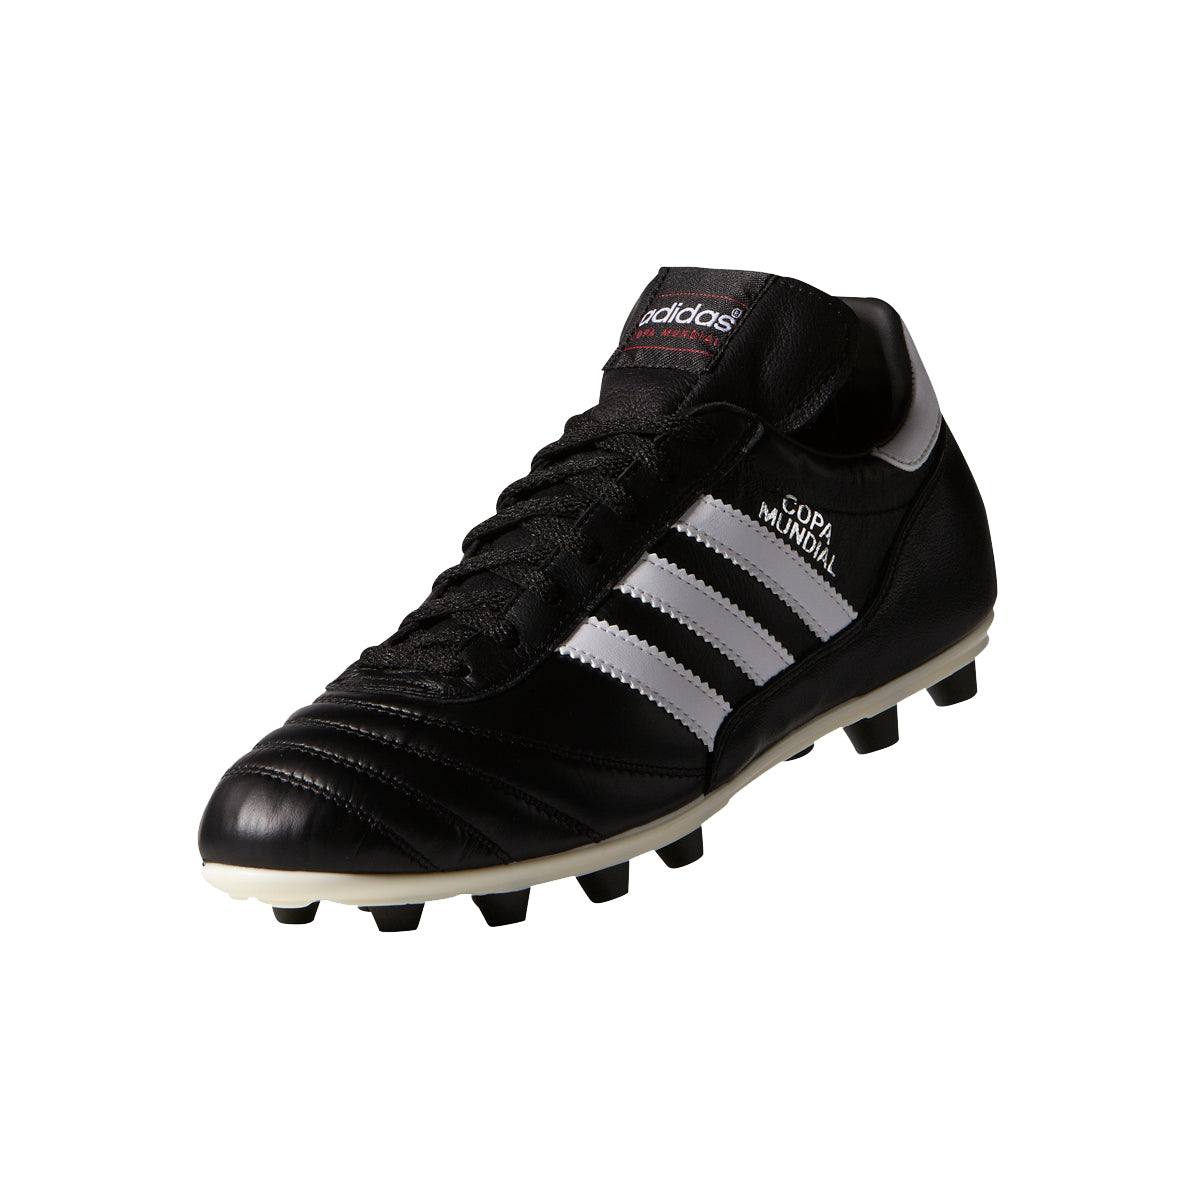 ff886daf Men's Copa Mundial Leather FG Cleats by Adidas at Gazelle Sports ...